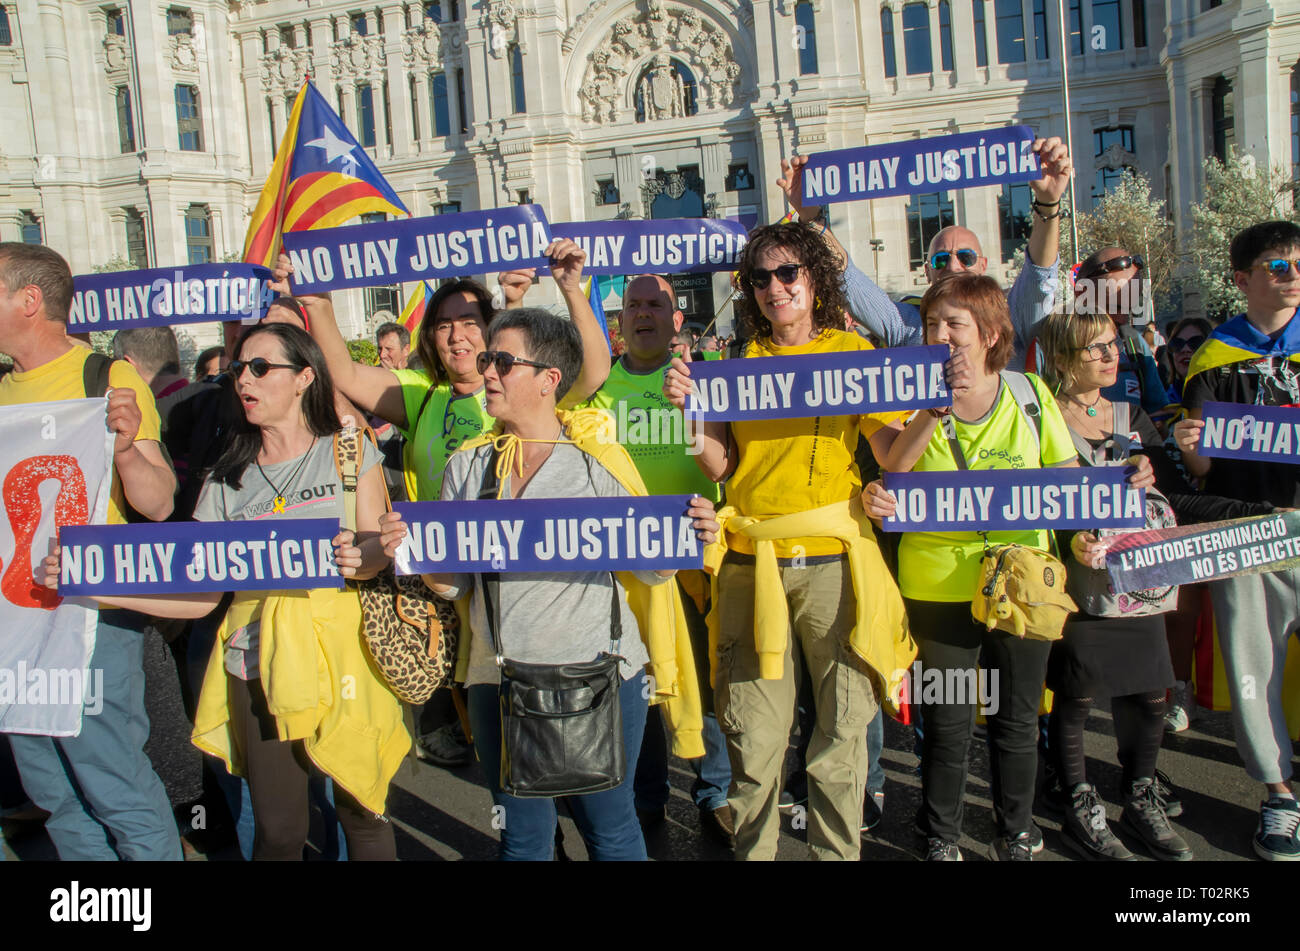 "Madrid, Spain. 16th March 2019. Thousands of people in Madrid protested in support of the independence of Catalonya and demanding freedom for the political prisoners.  In the picture people with placards that say ""There is no justice"" Credit: Lora Grigorova/Alamy Live News Stock Photo"